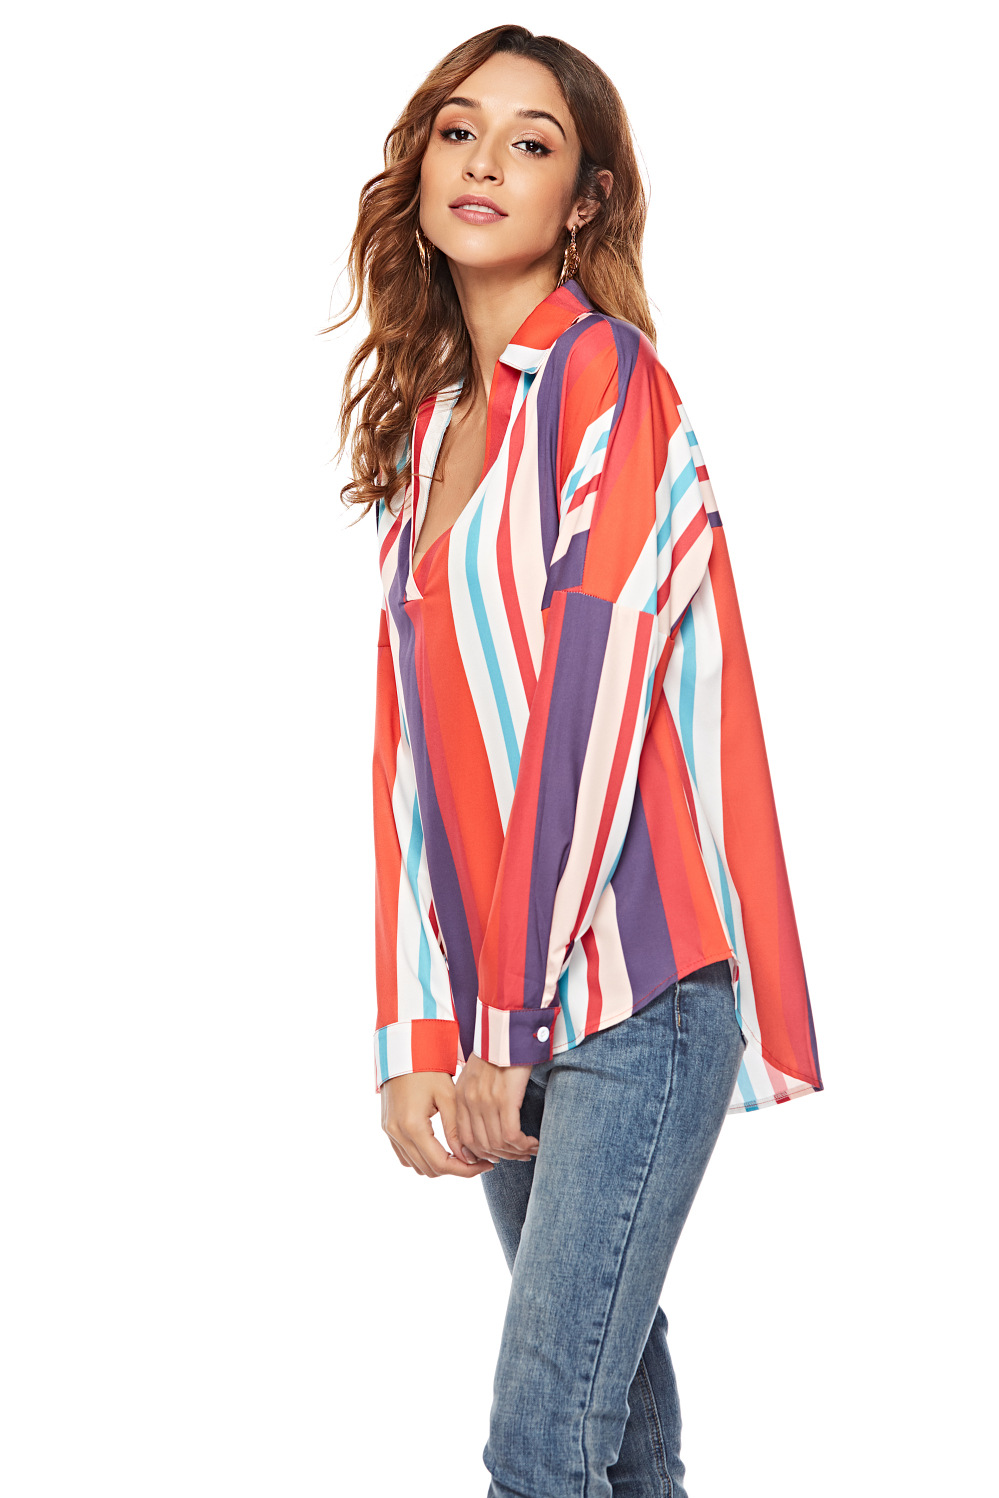 women blouse fashion 2020  female ladies clothing womens striped long sleeve casual elegant office work top shirt top 90s